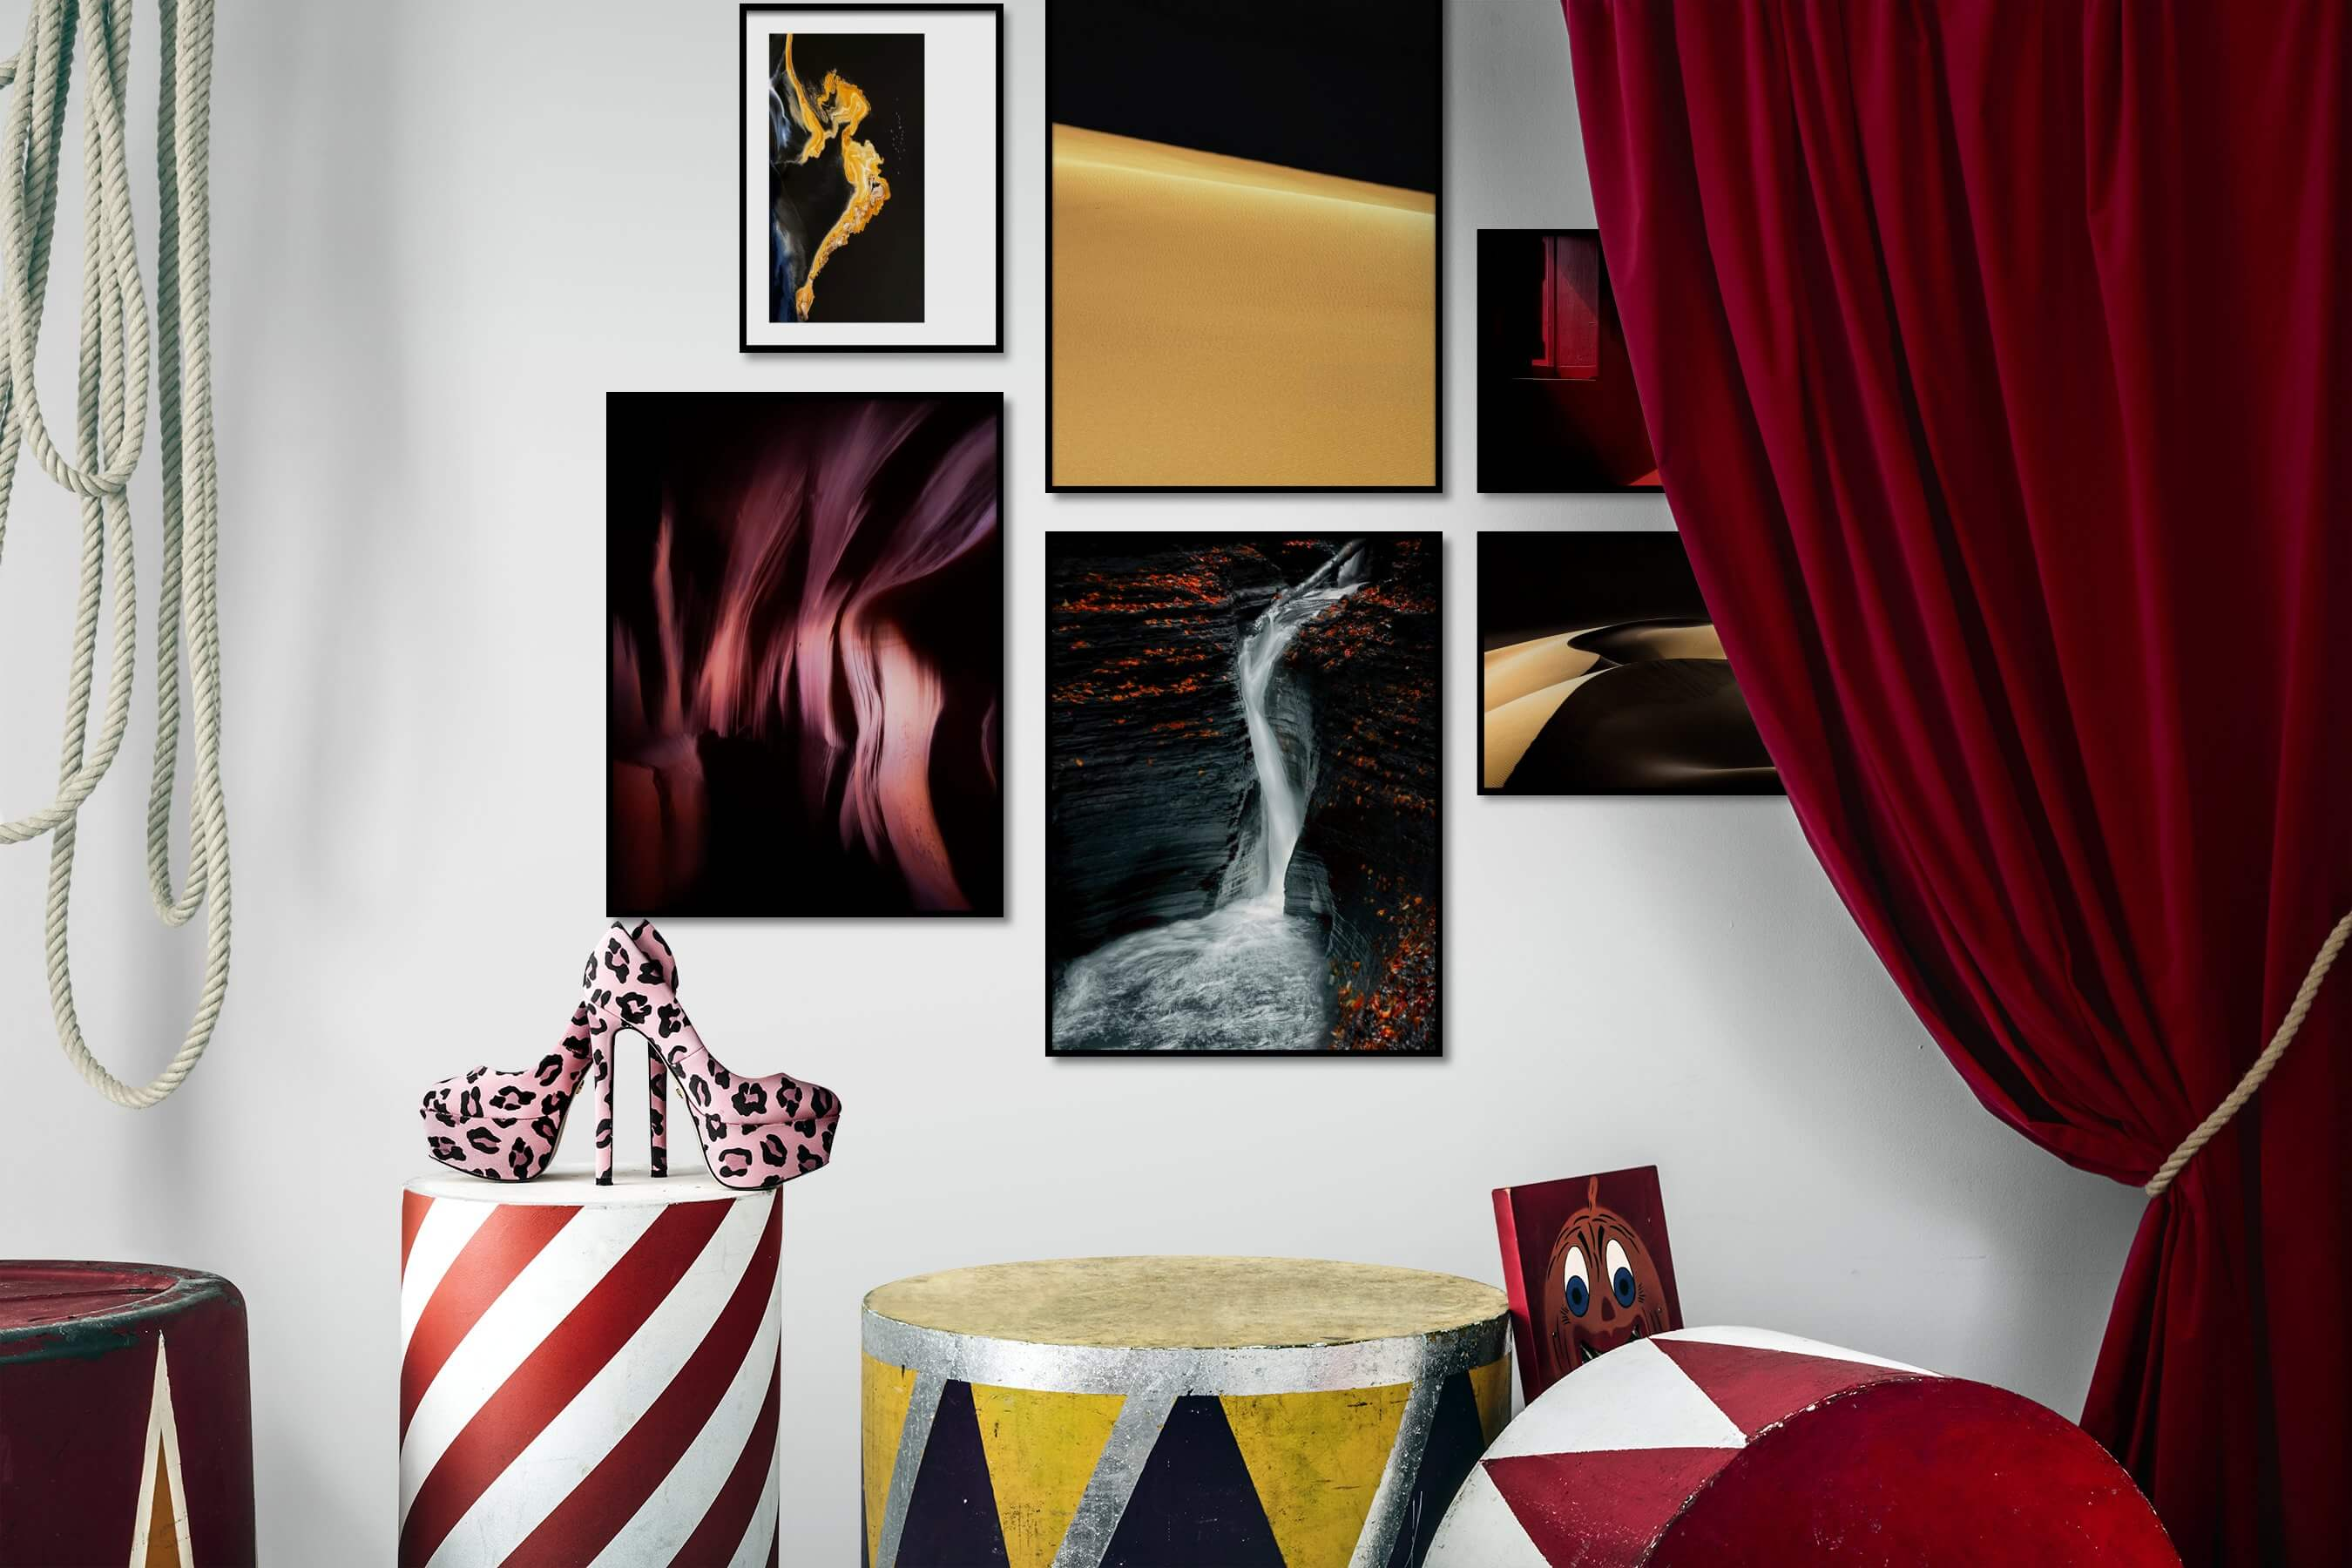 Gallery wall idea with six framed pictures arranged on a wall depicting For the Minimalist, Nature, For the Moderate, and Dark Tones